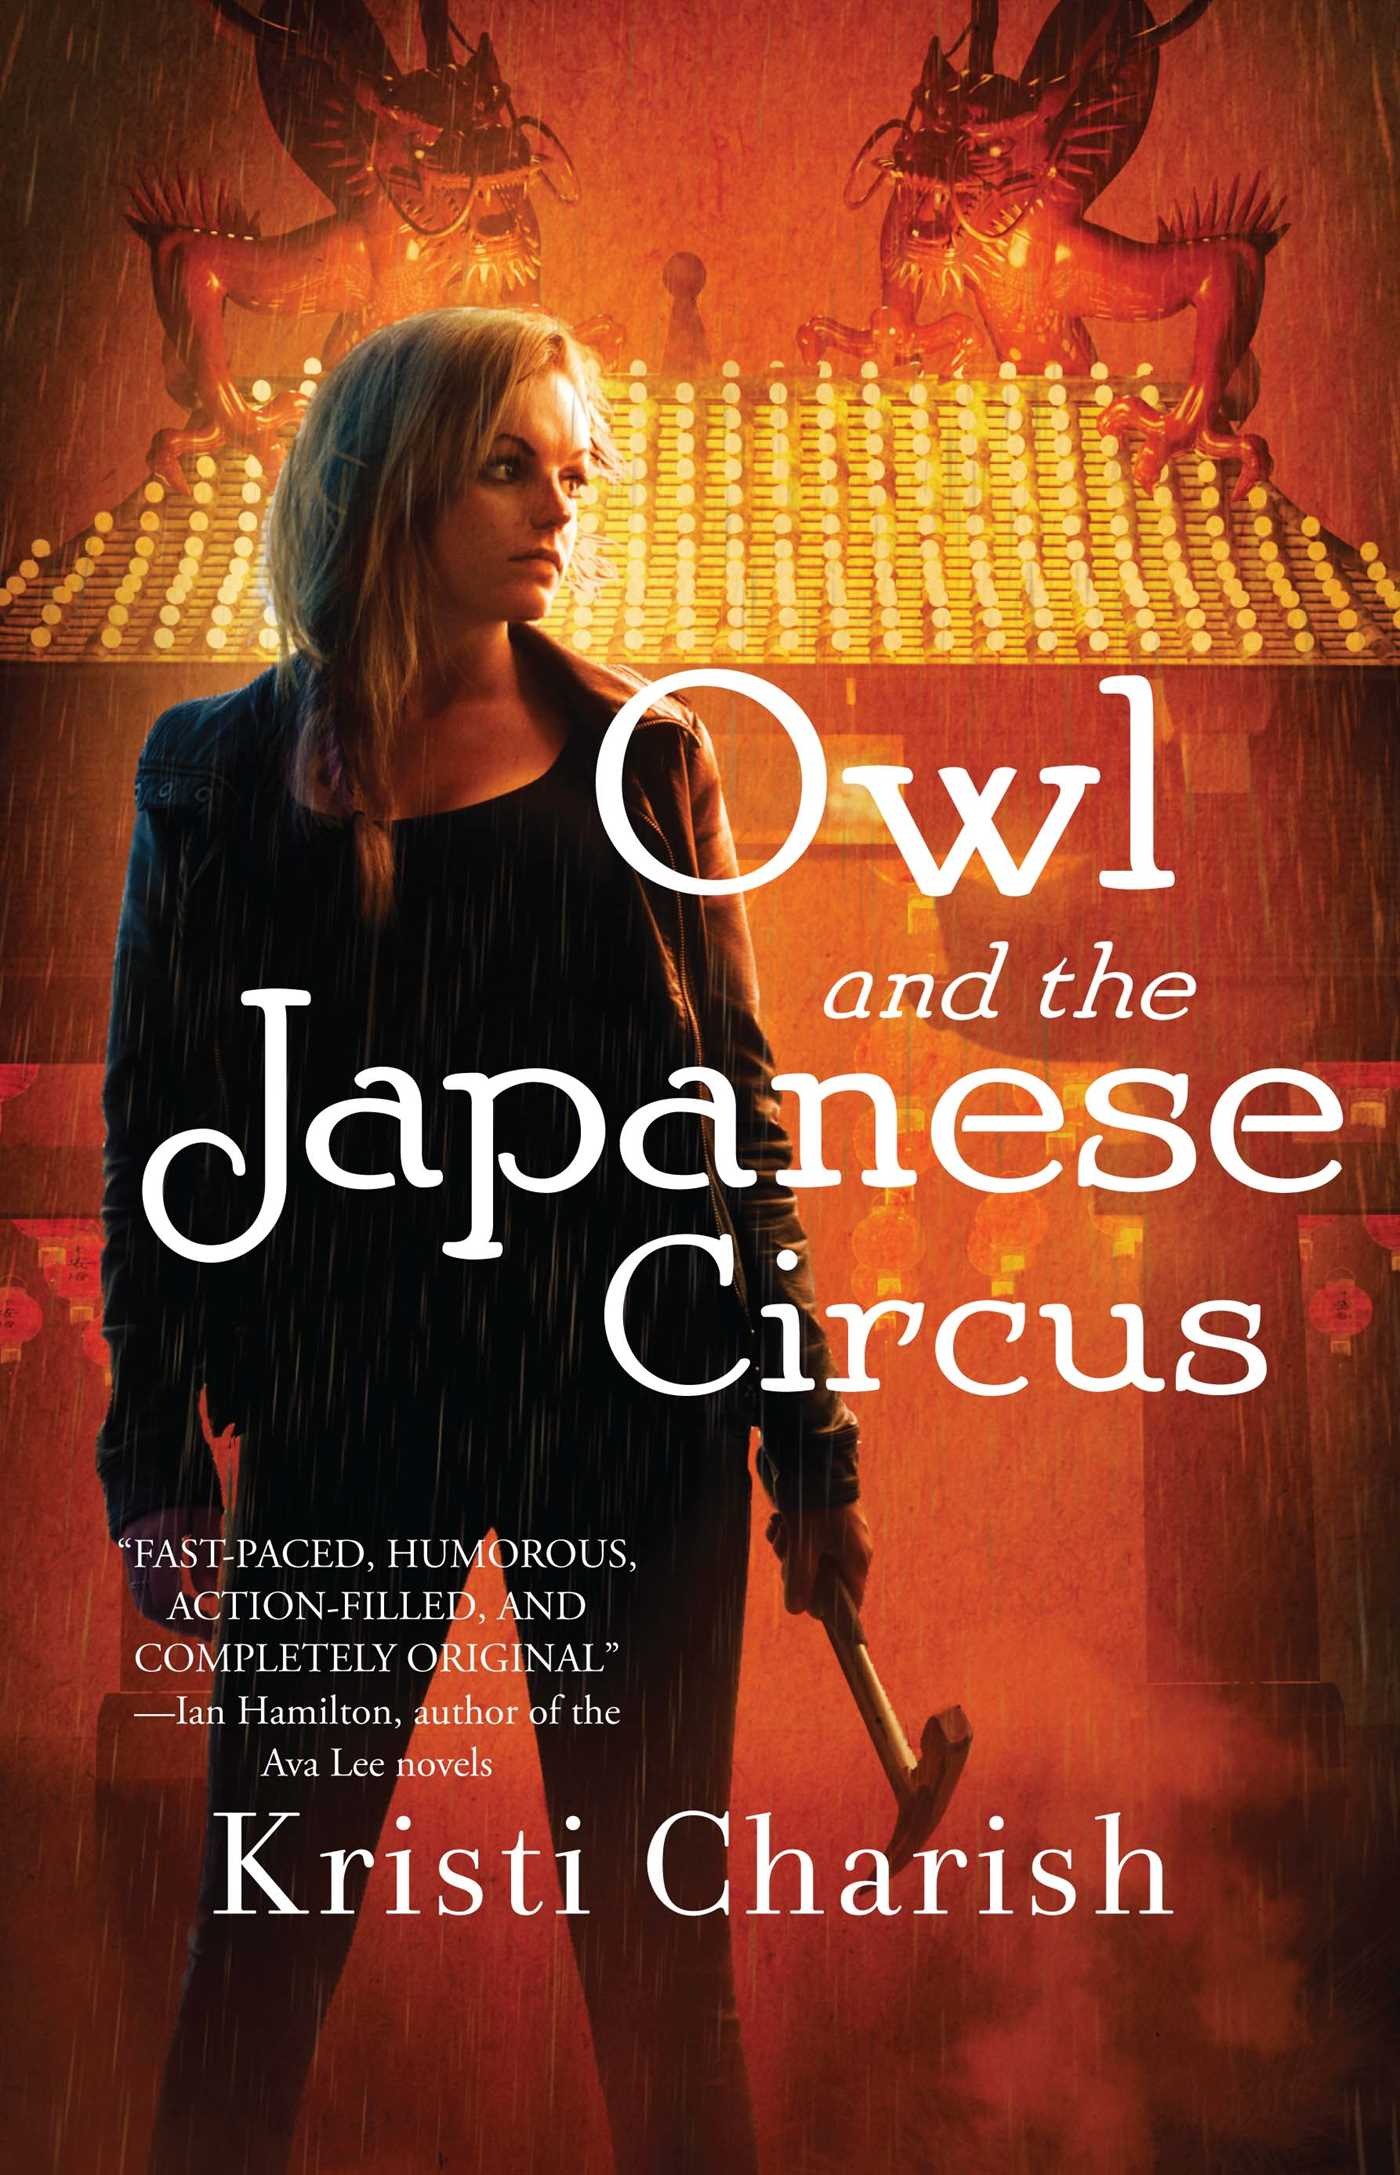 Owl and the japanese circus 9781476794990 hr